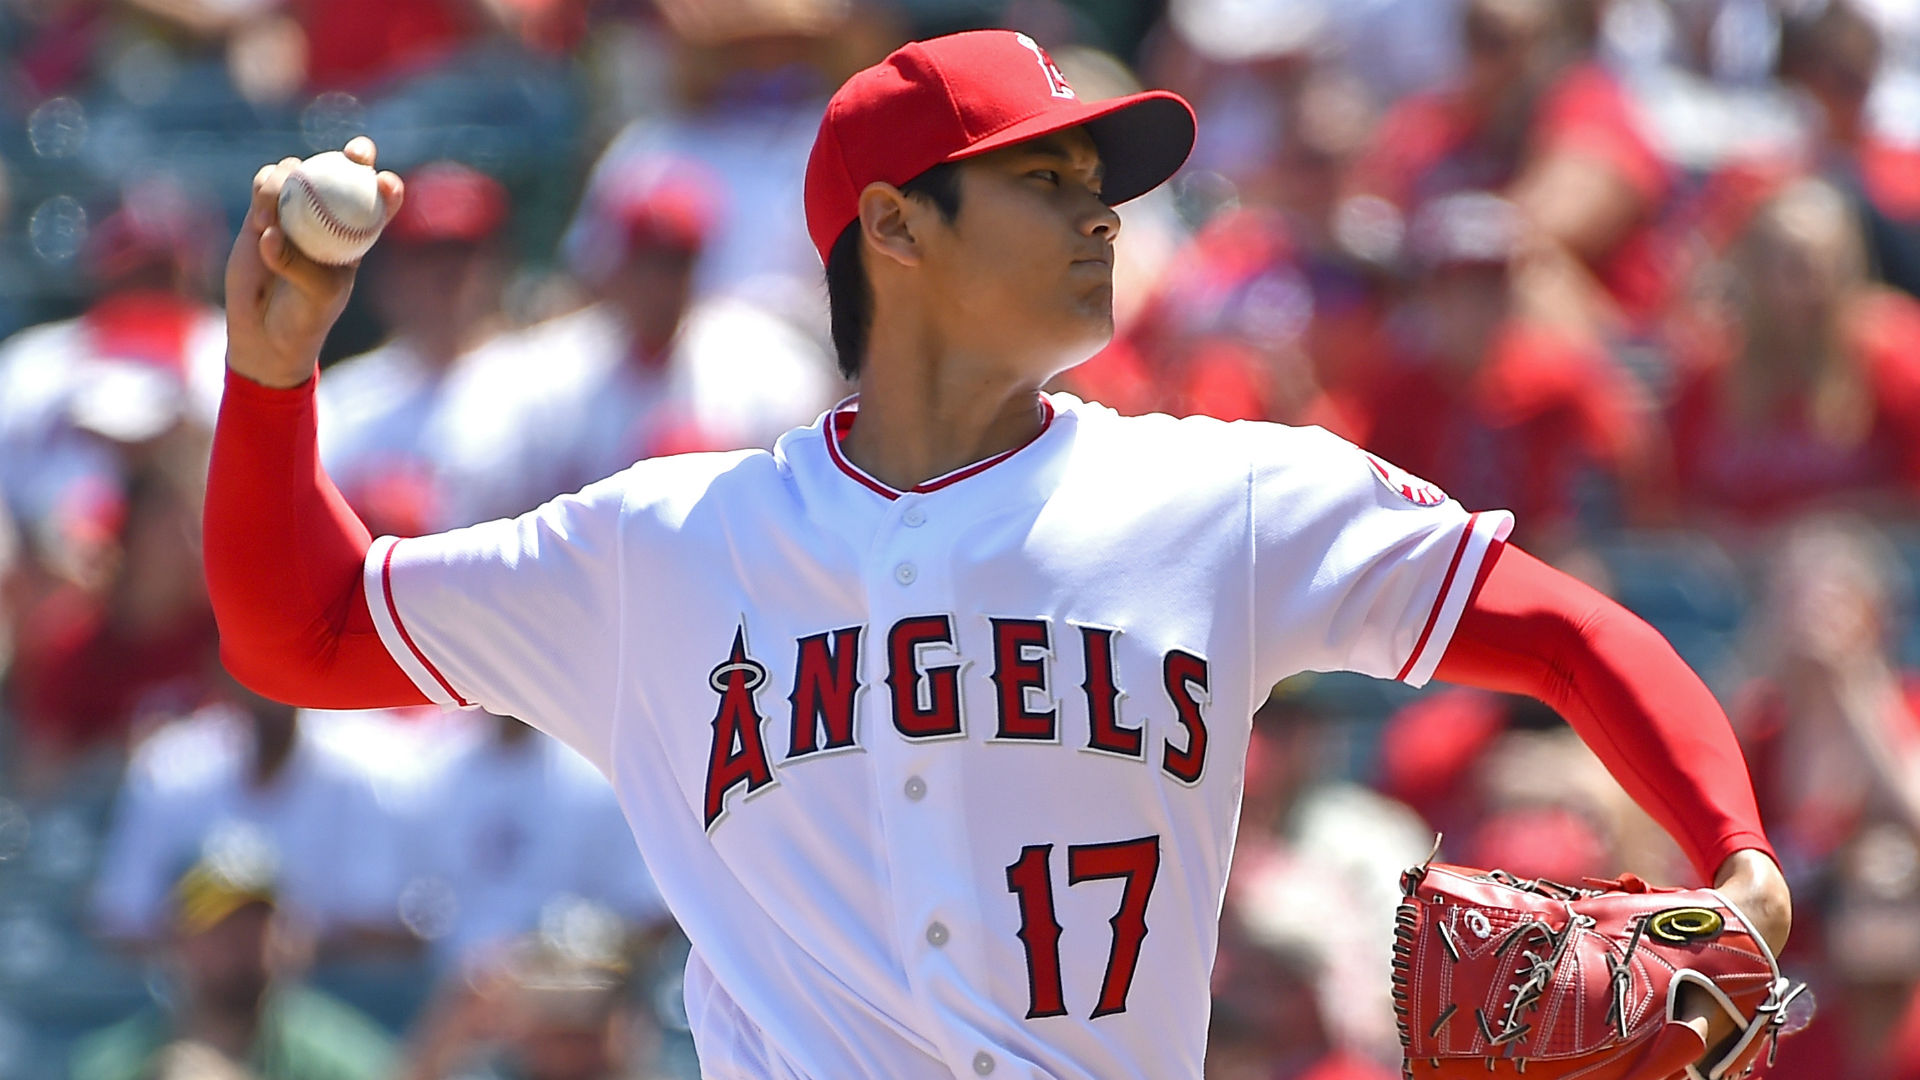 Shohei Ohtani injury update: Angels star nears return as DH, GM outlines plan